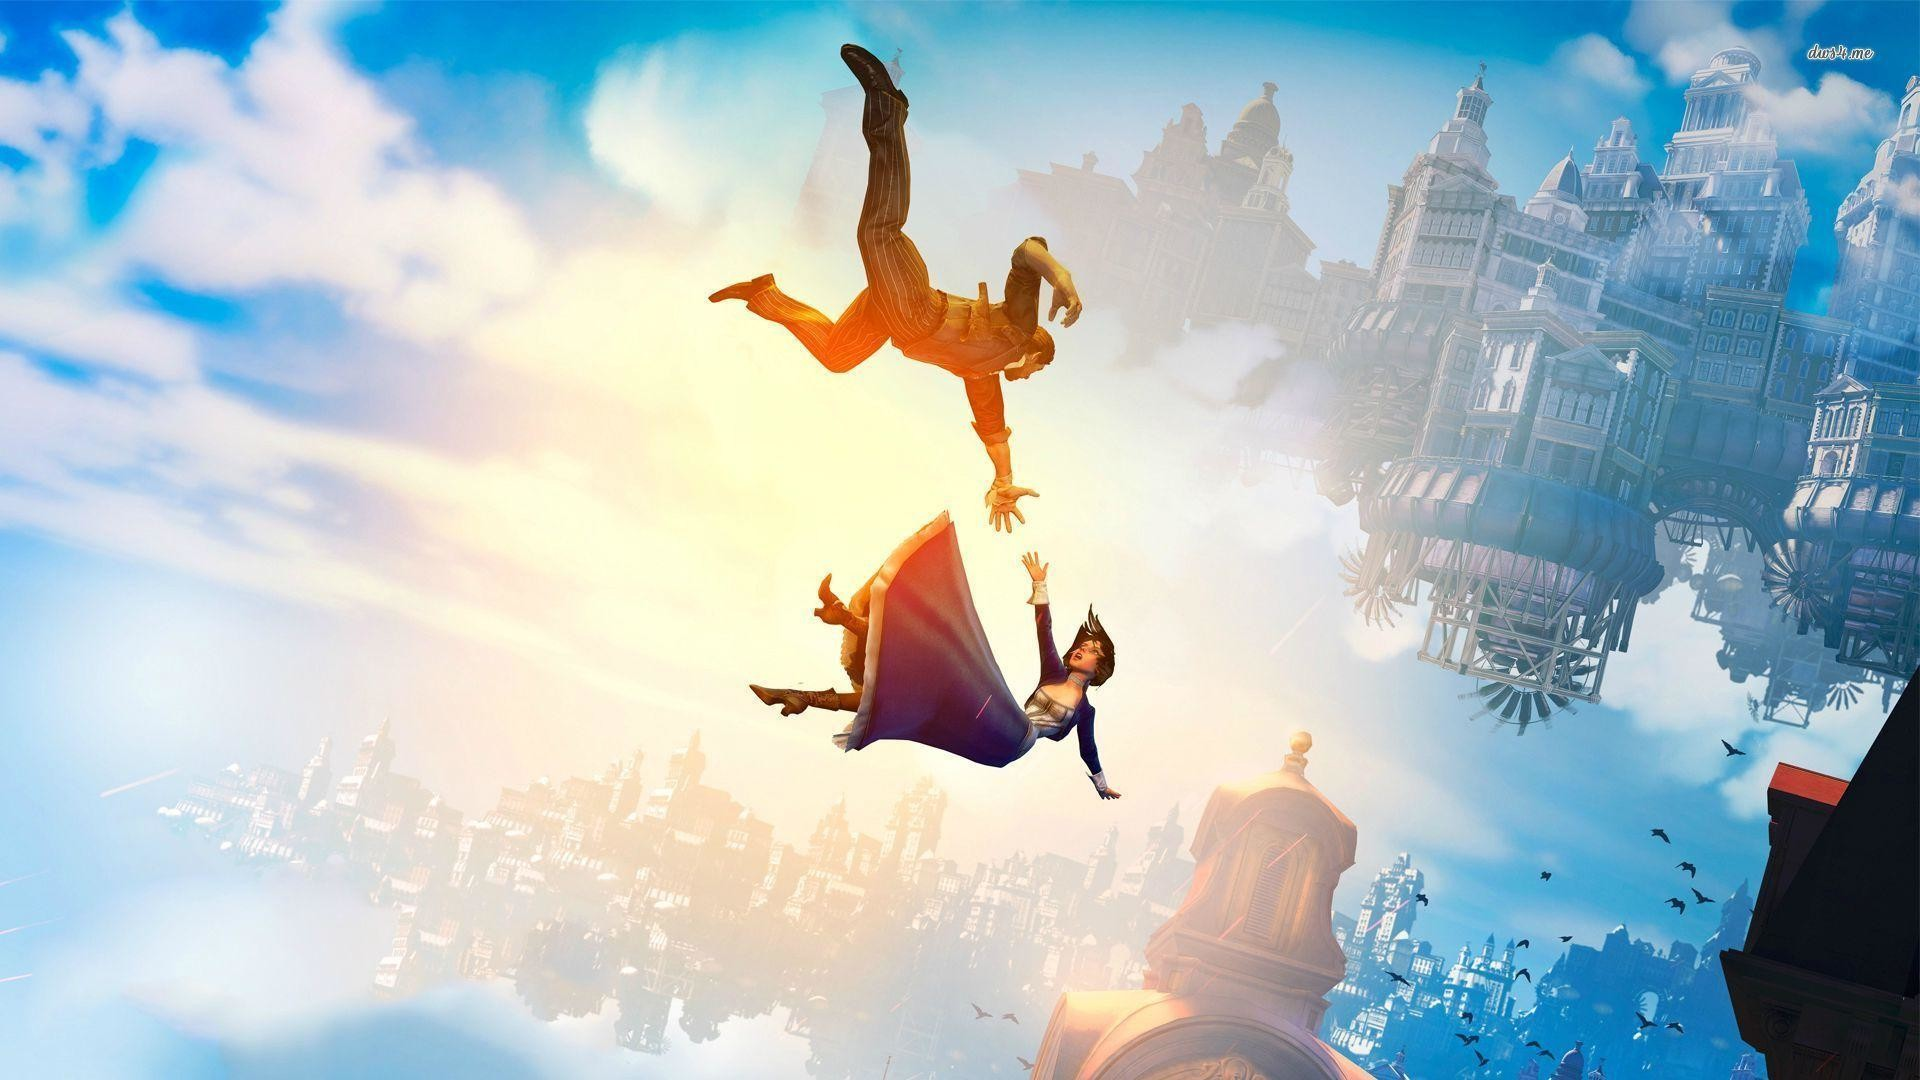 BiOShock Infinite Wallpapers 74 images 1920x1080